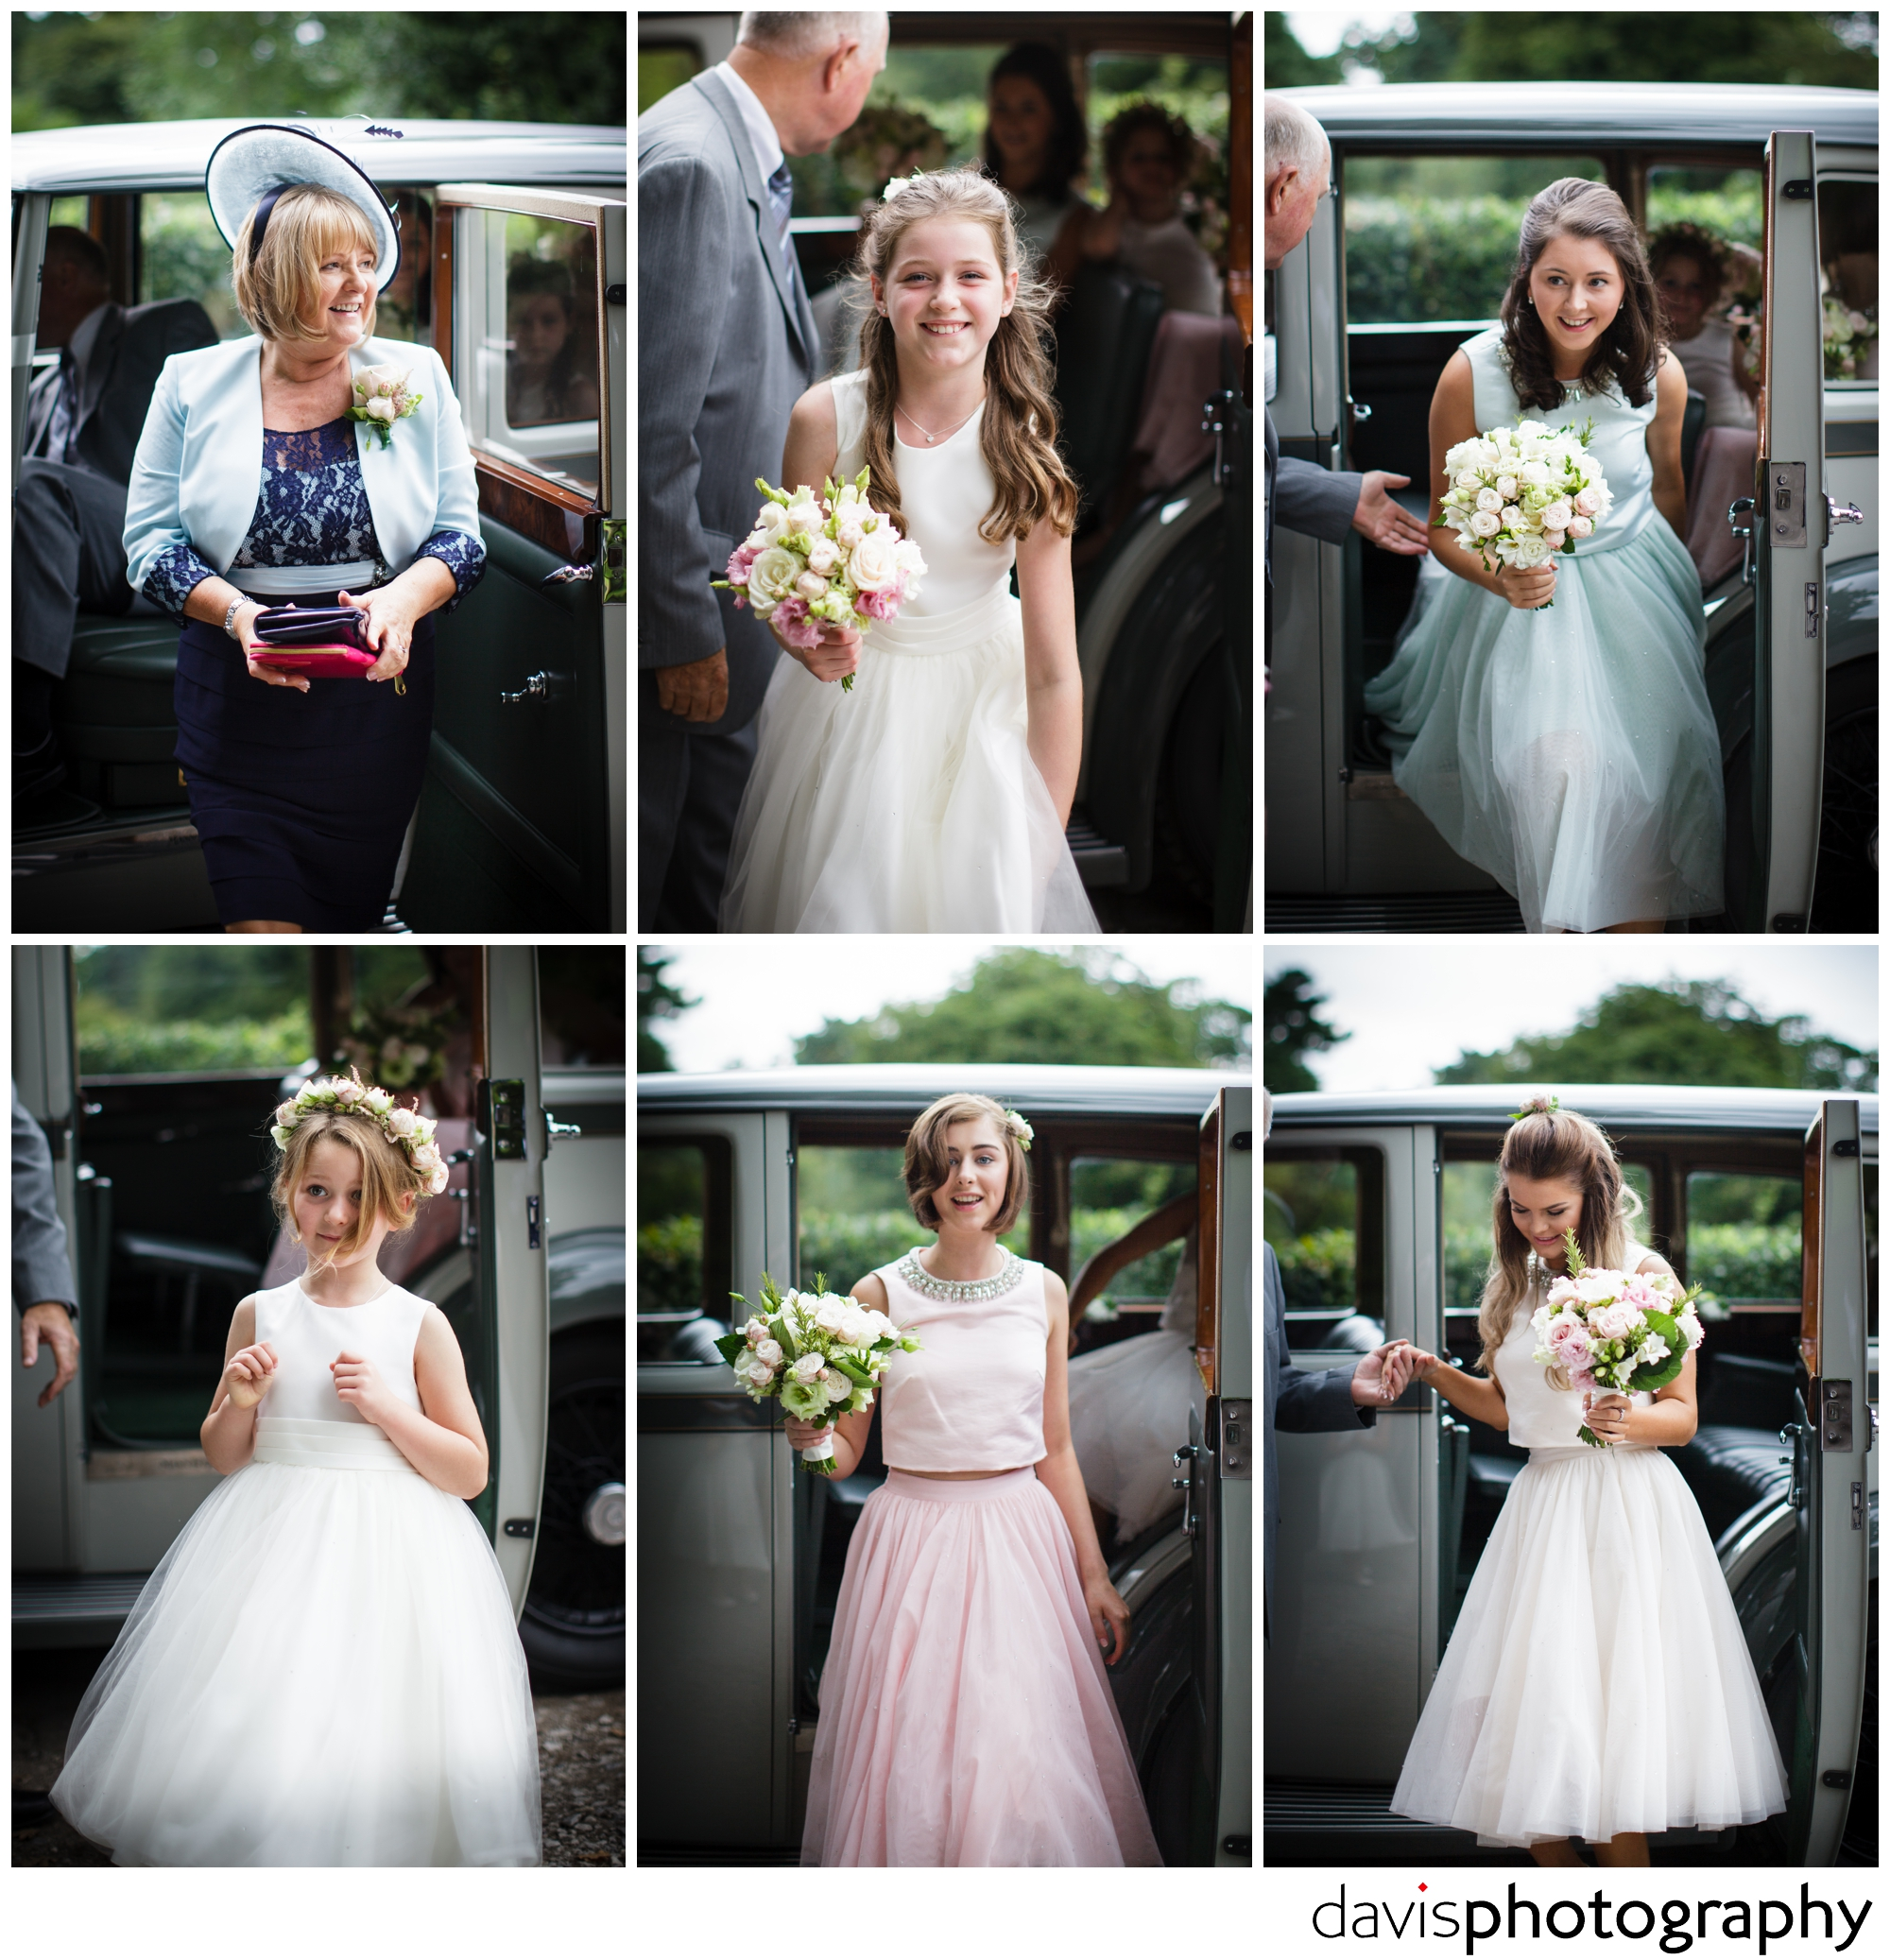 bridesmaids arrive in style,